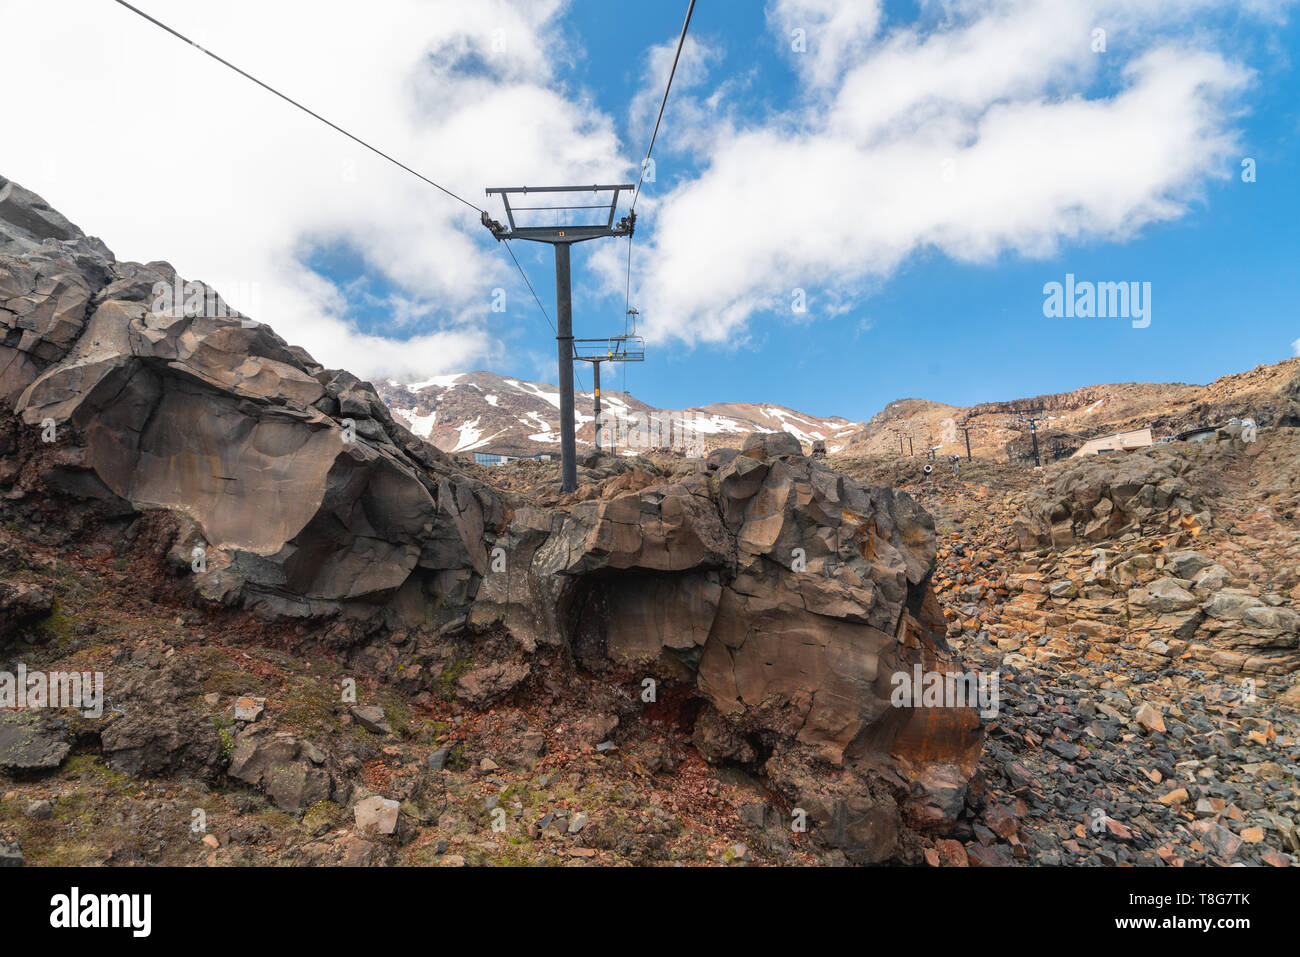 Ski Lift, Mount Ruapehu,  Tongariro National Park, North Island of New Zealand - Stock Image